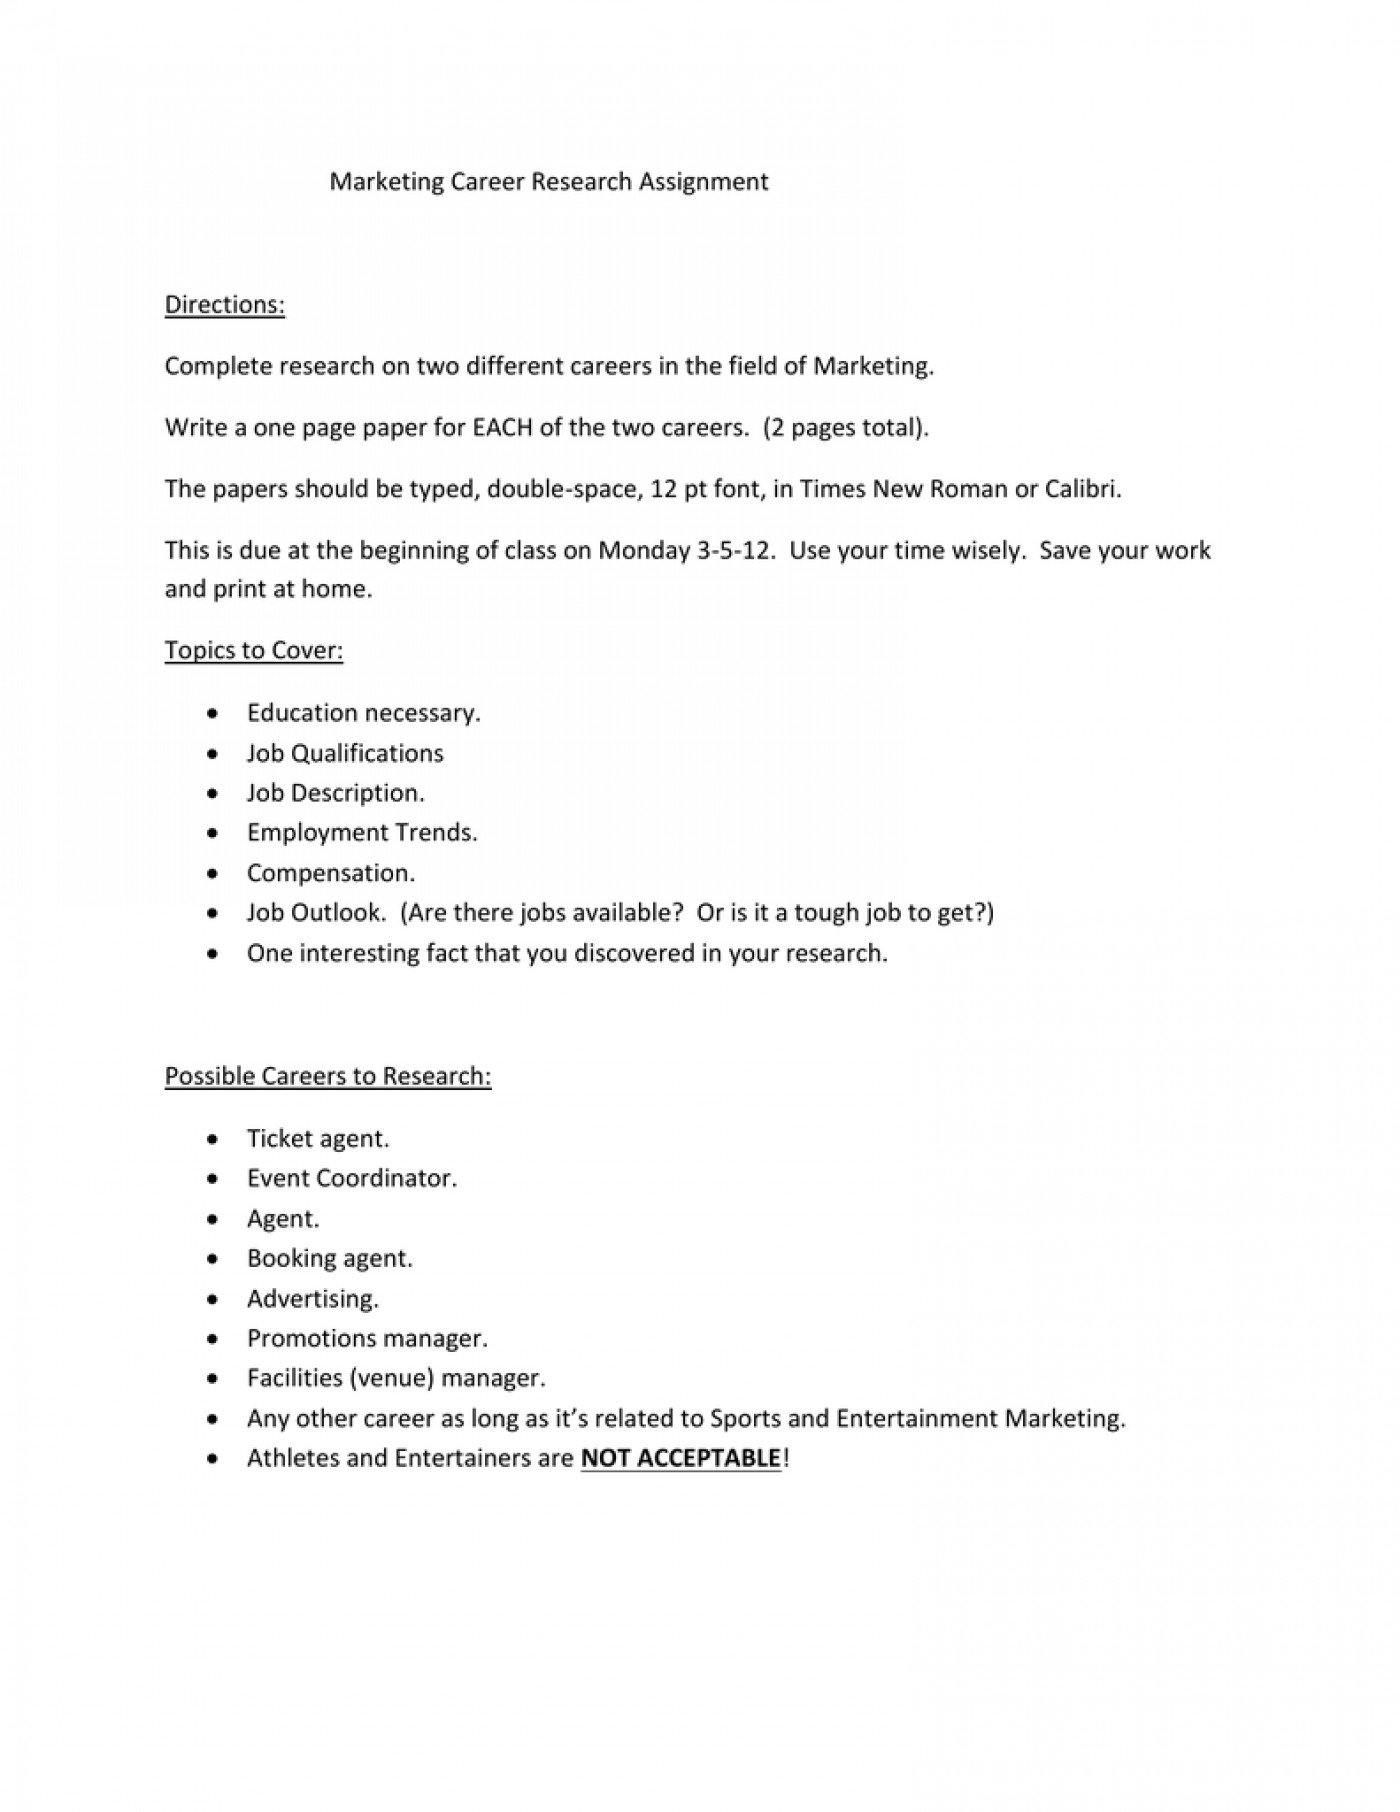 012 Research Paper Papers On Careers 006189065 1 Remarkable Examples Of 1400